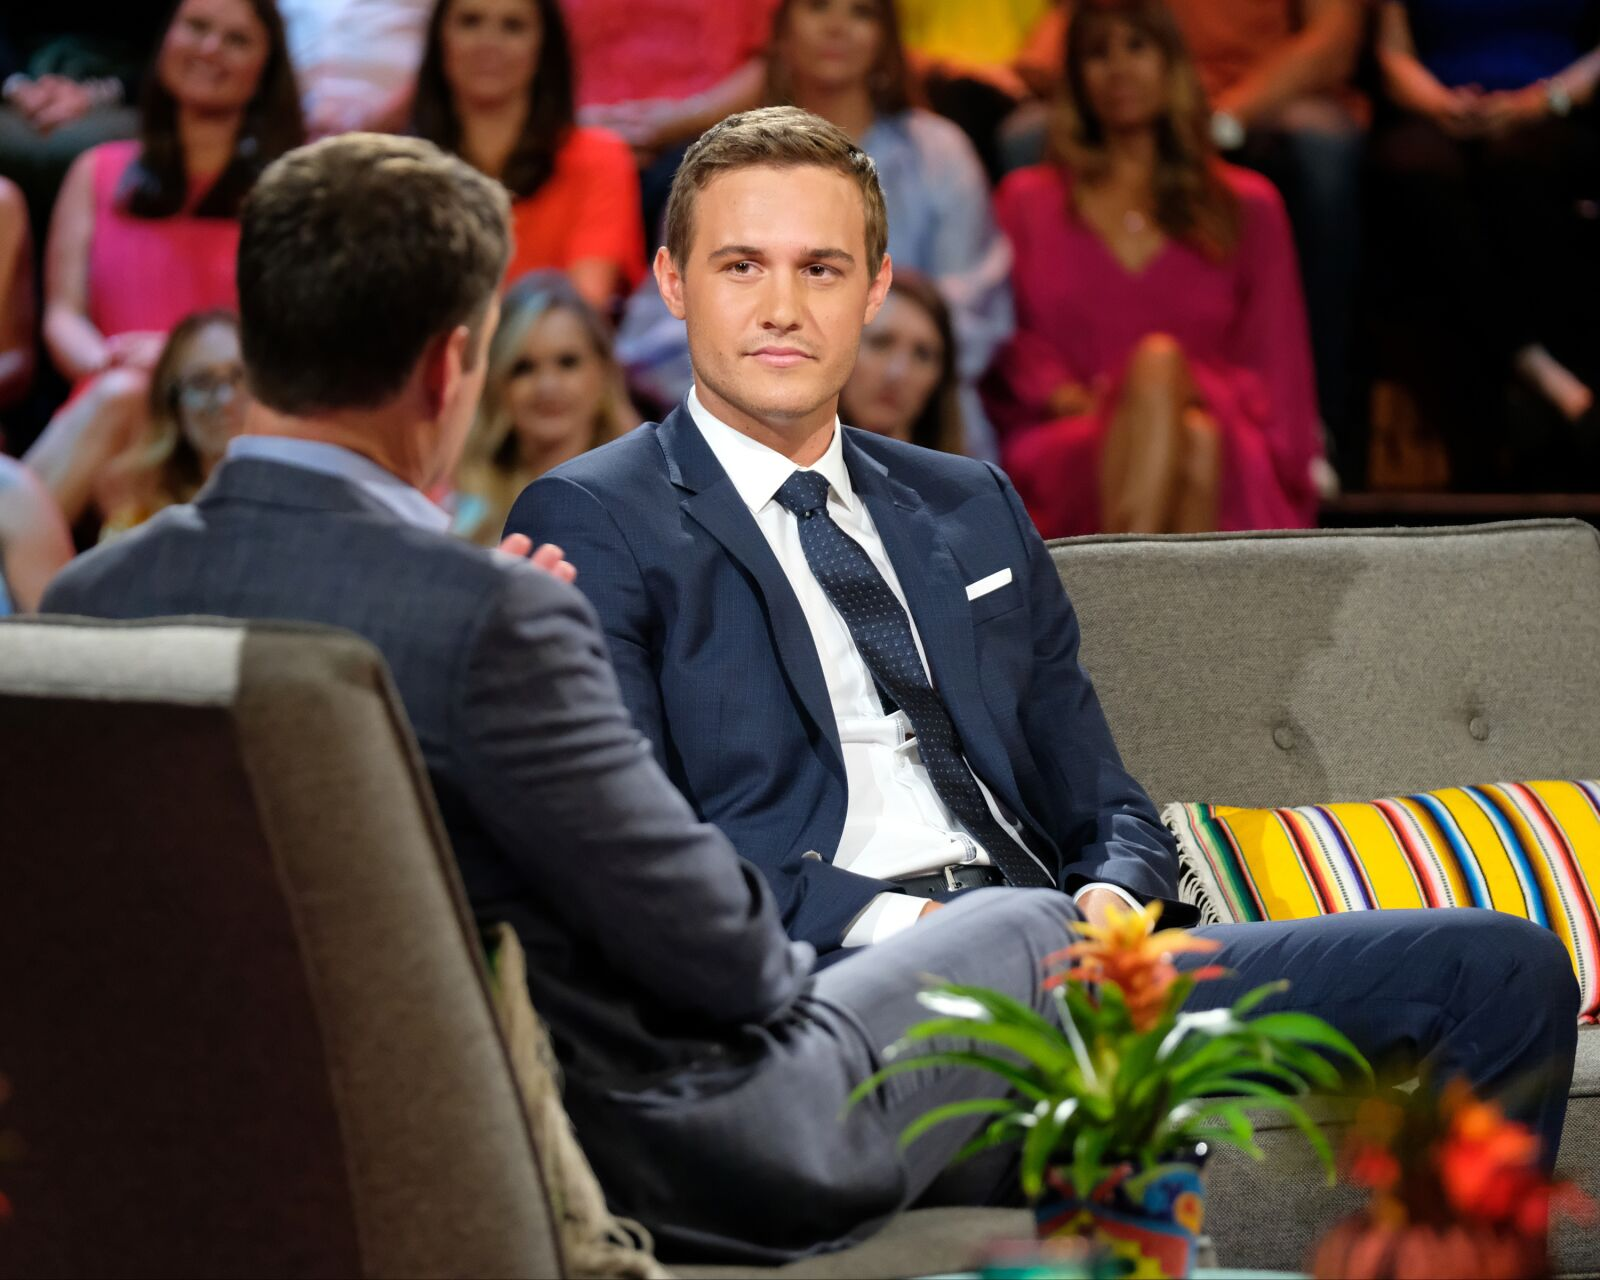 The Bachelor: Peter Weber has an accident on set